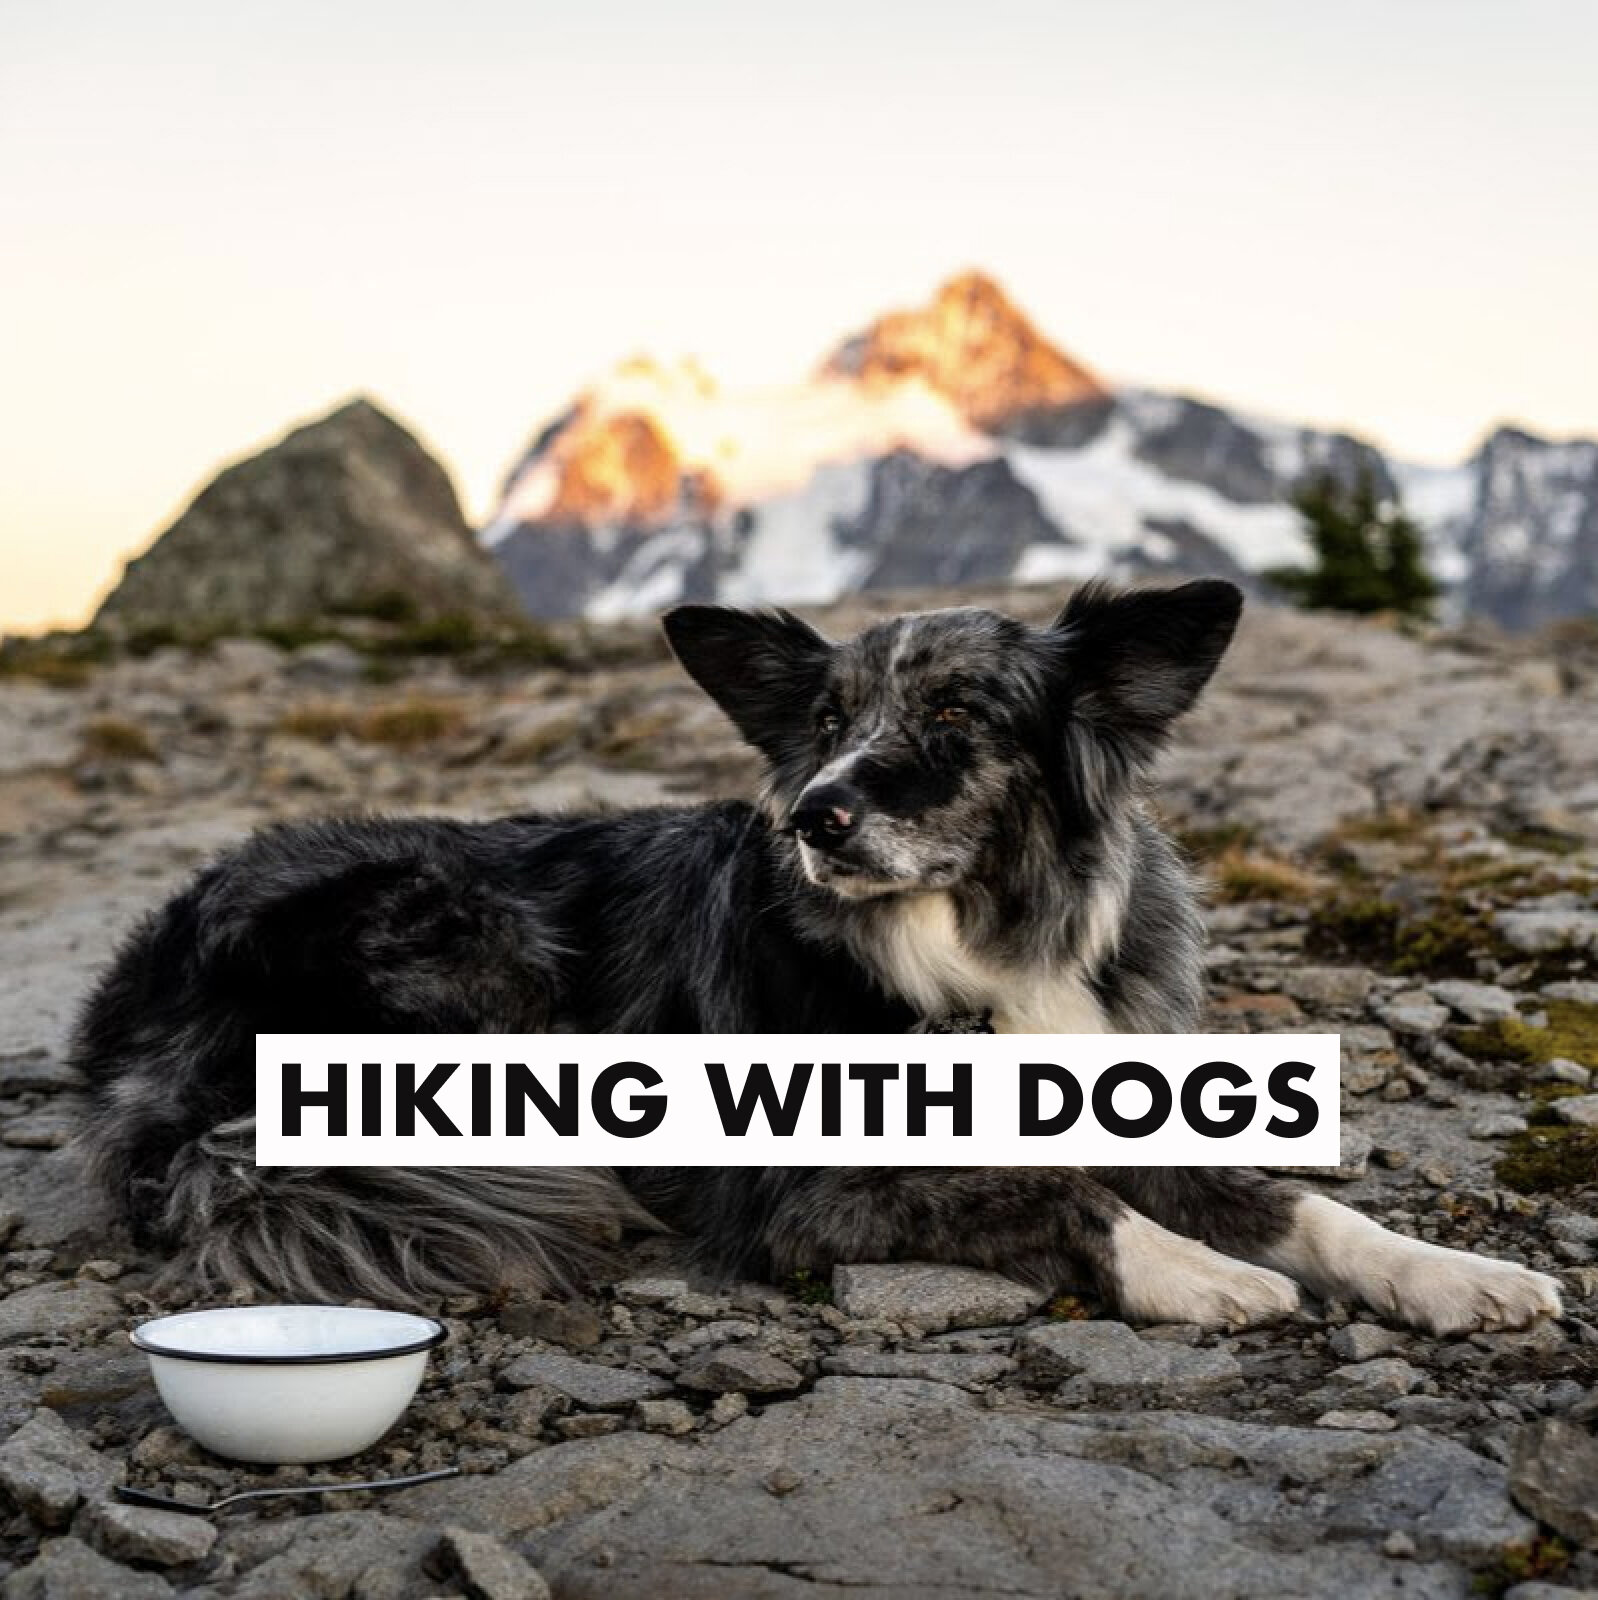 hiking with dogs.jpg